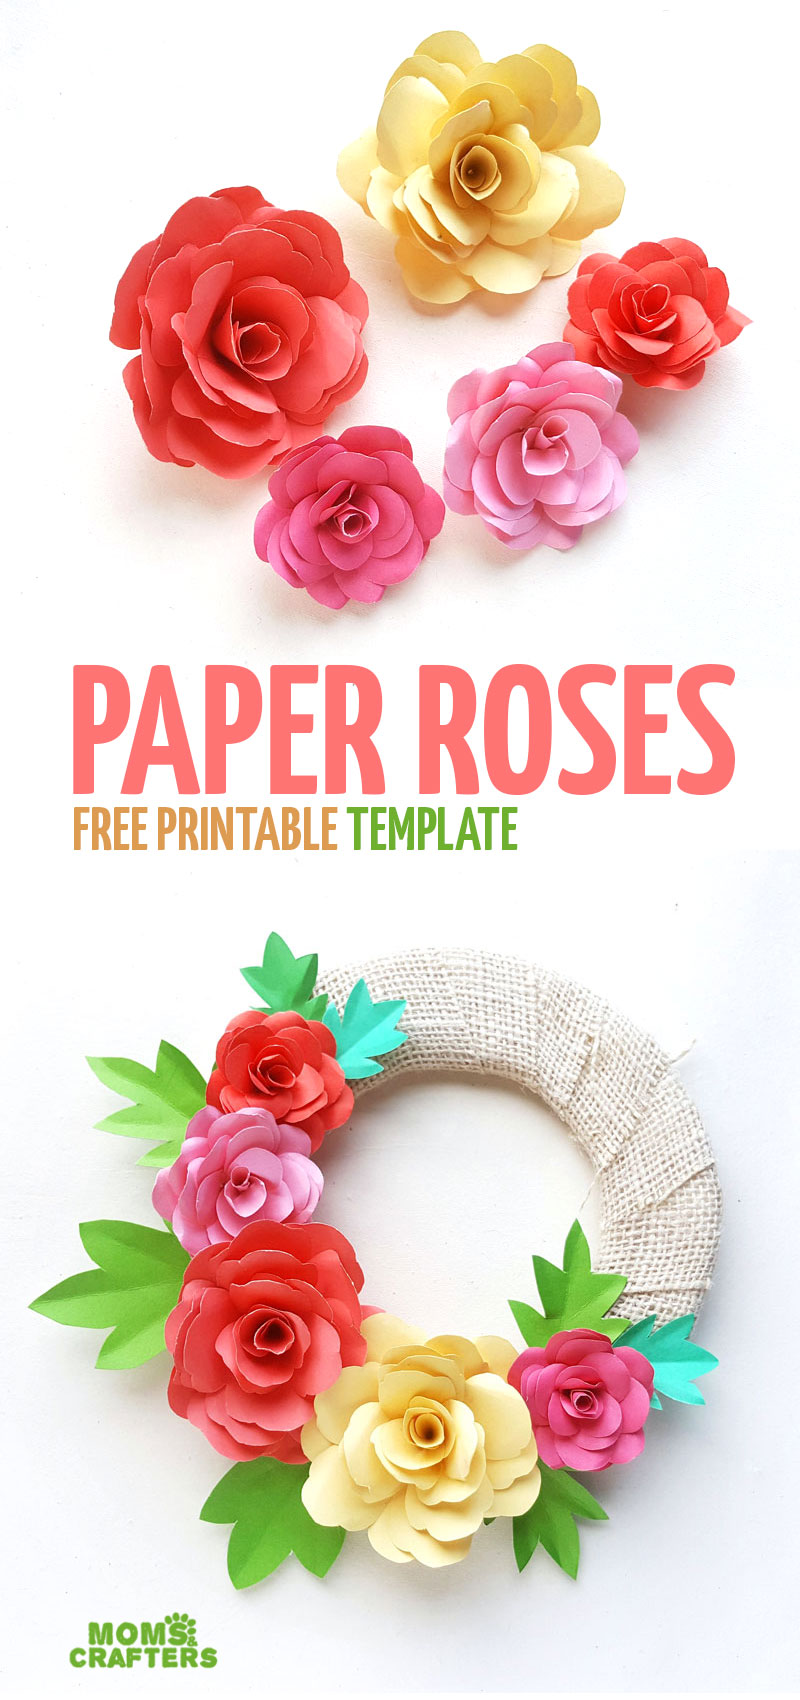 photograph about Paper Rose Template Printable called Do it yourself Paper Roses - and a interesting paper flower spring wreath!